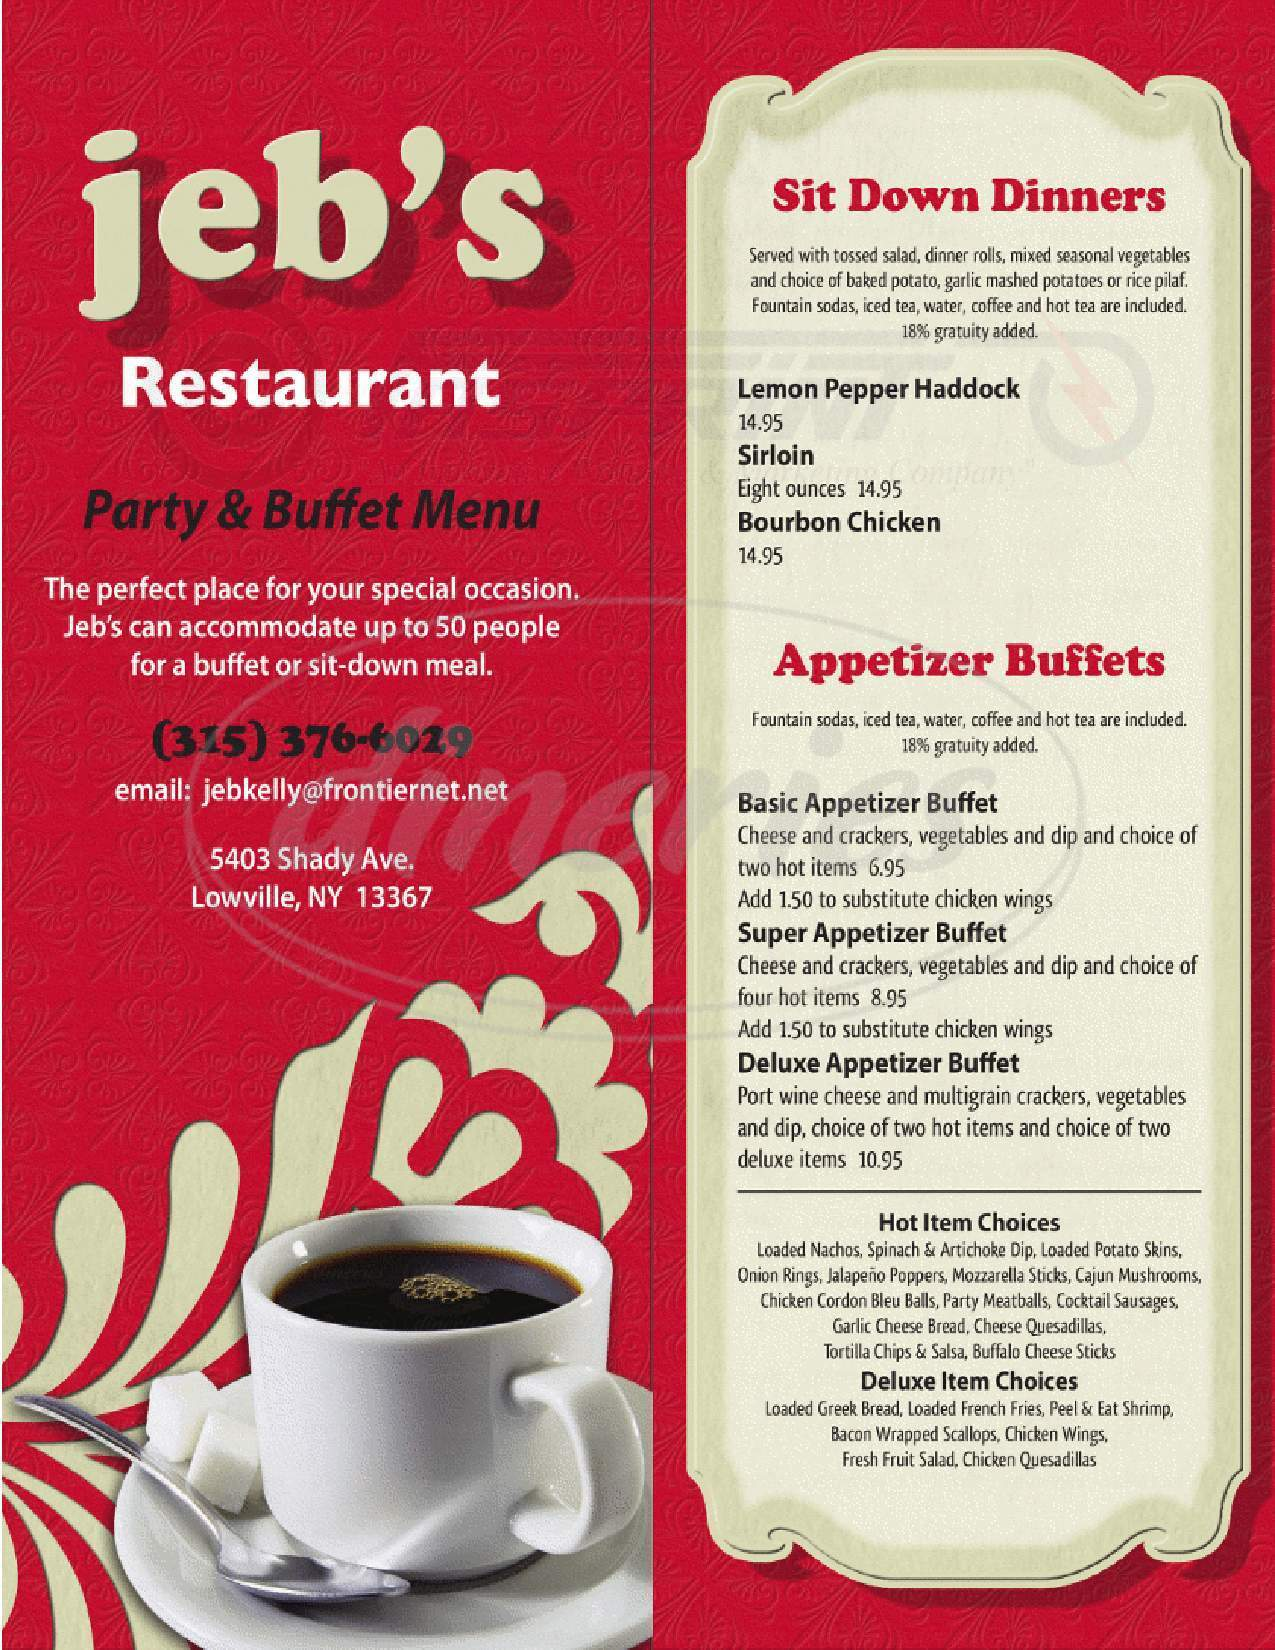 menu for jeb's Restaurant